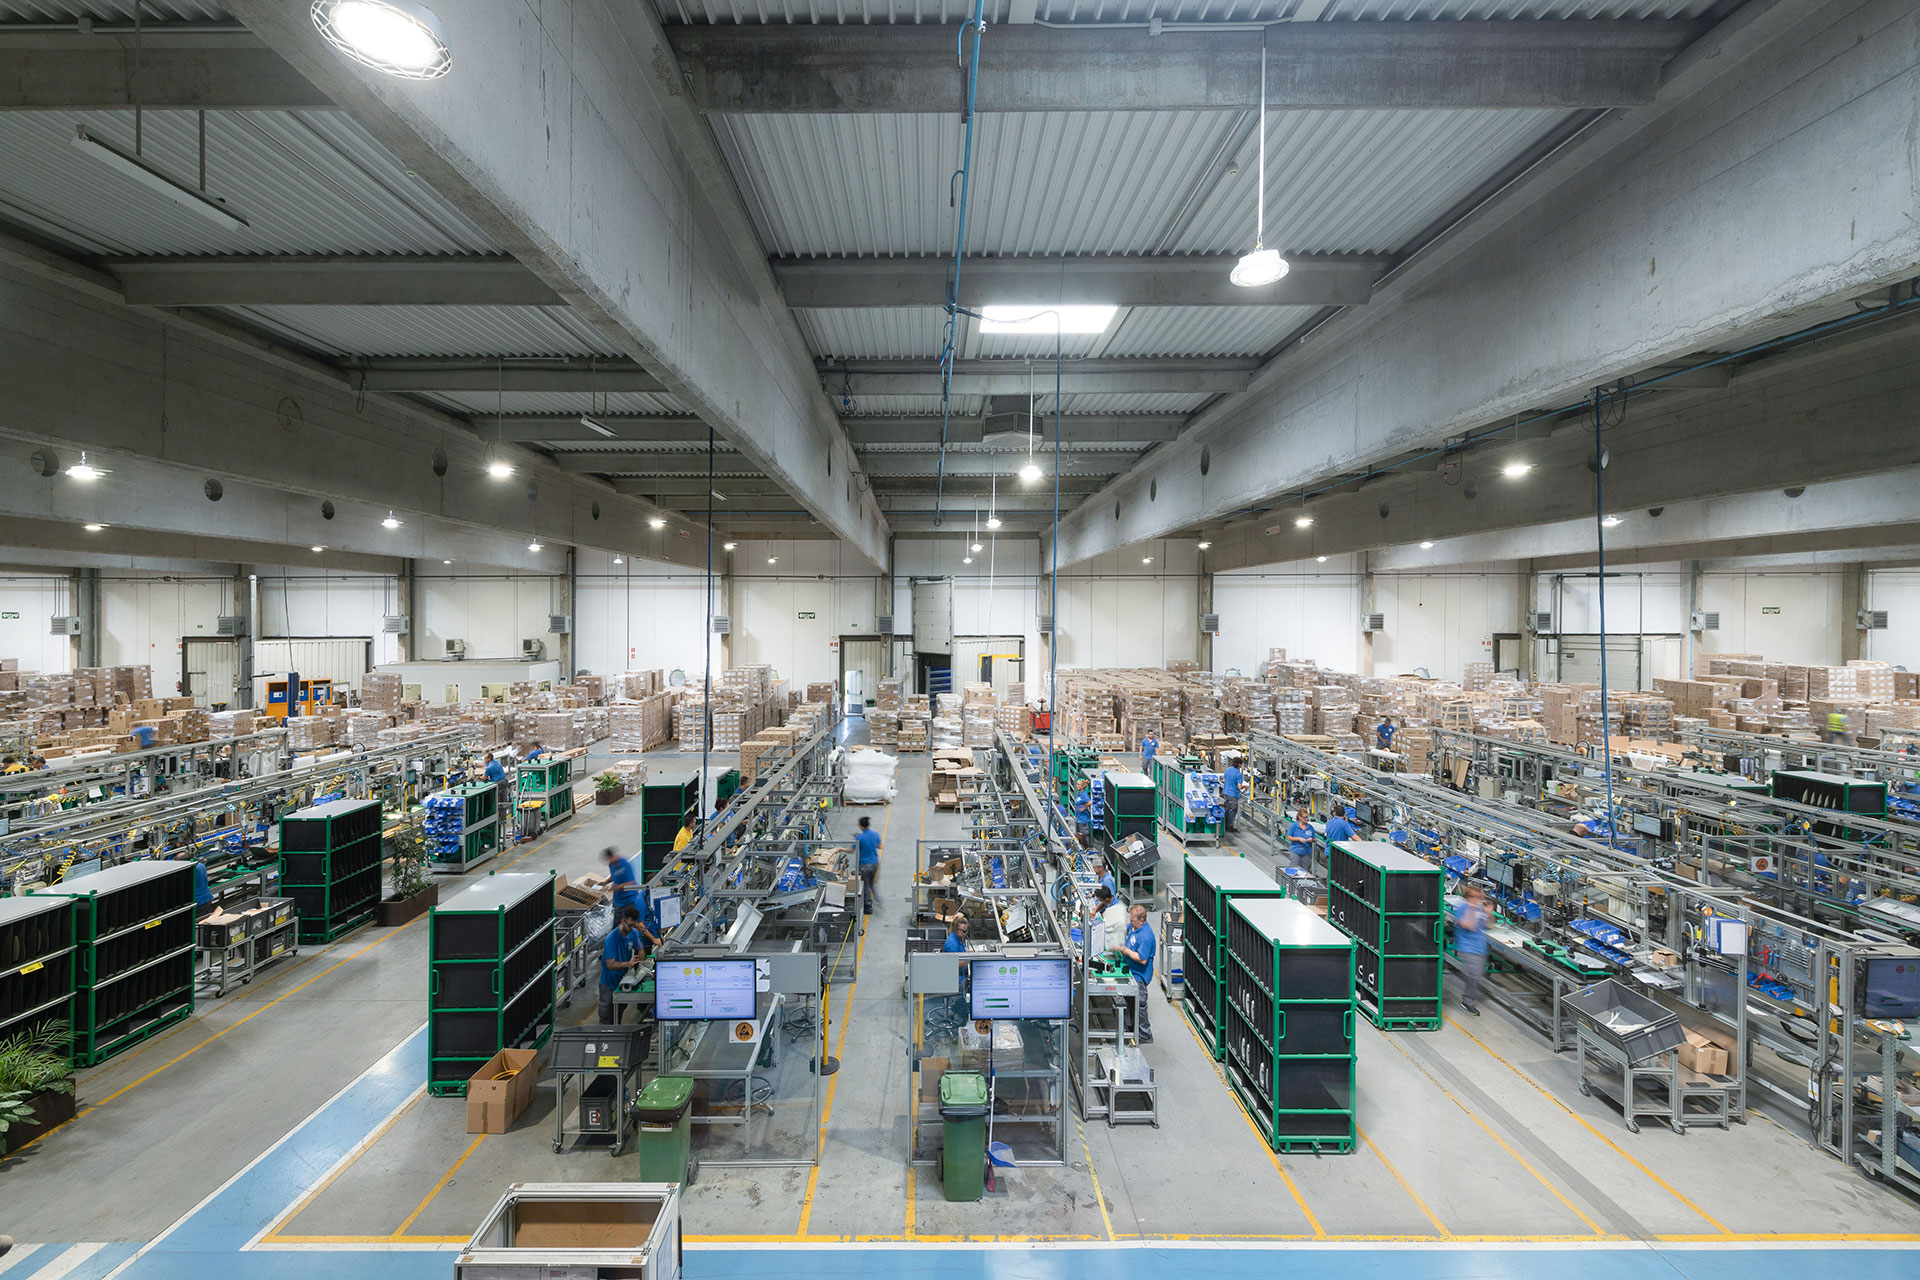 INDU BAY lights this warehouse ensuring perfect visibility for employees